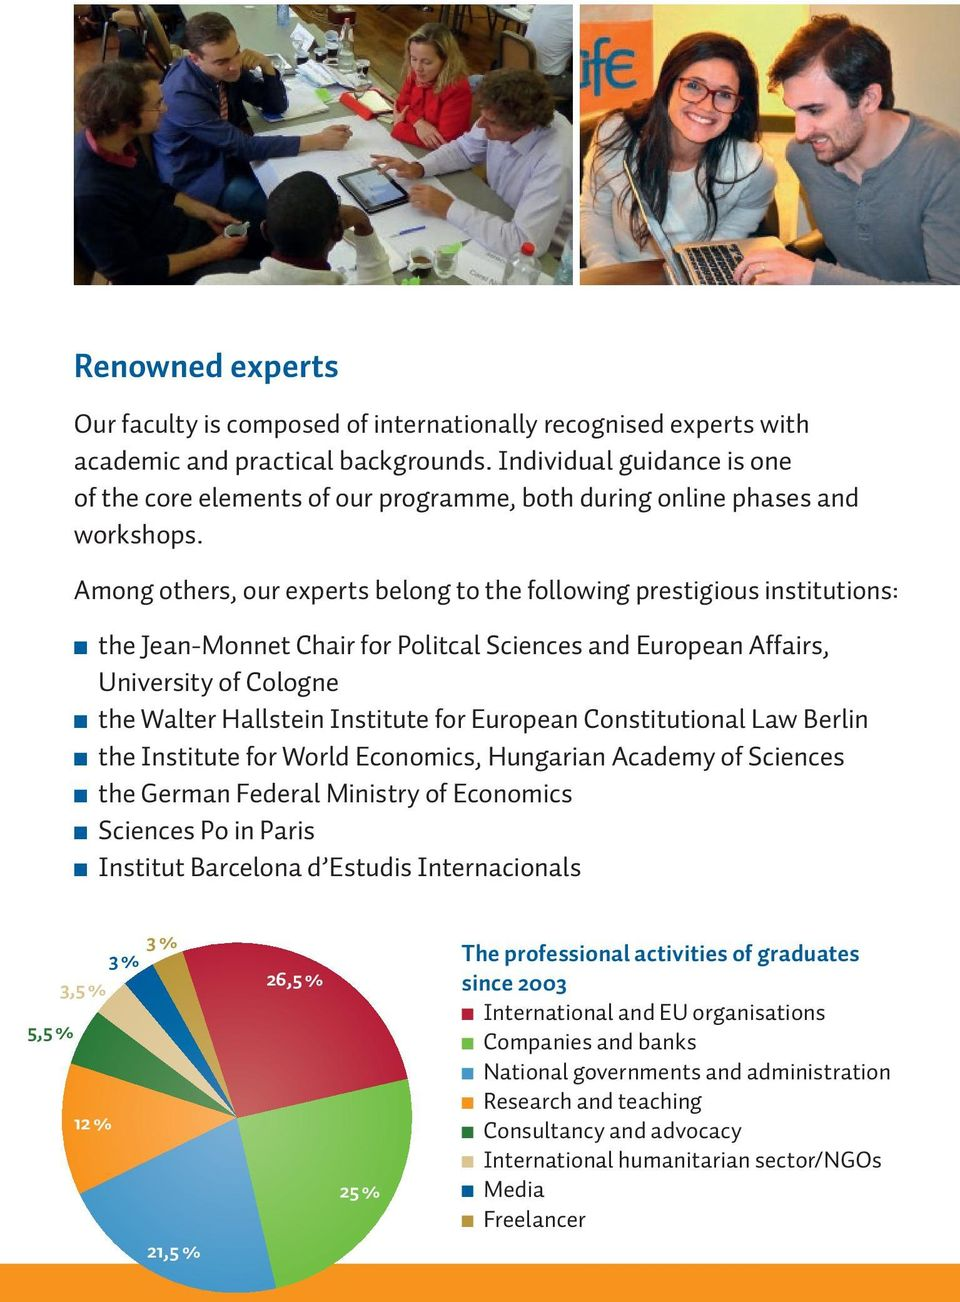 Among others, our experts belong to the following prestigious institutions: n the Jean-Monnet Chair for Politcal Sciences and European Affairs, University of Cologne n the Walter Hallstein Institute